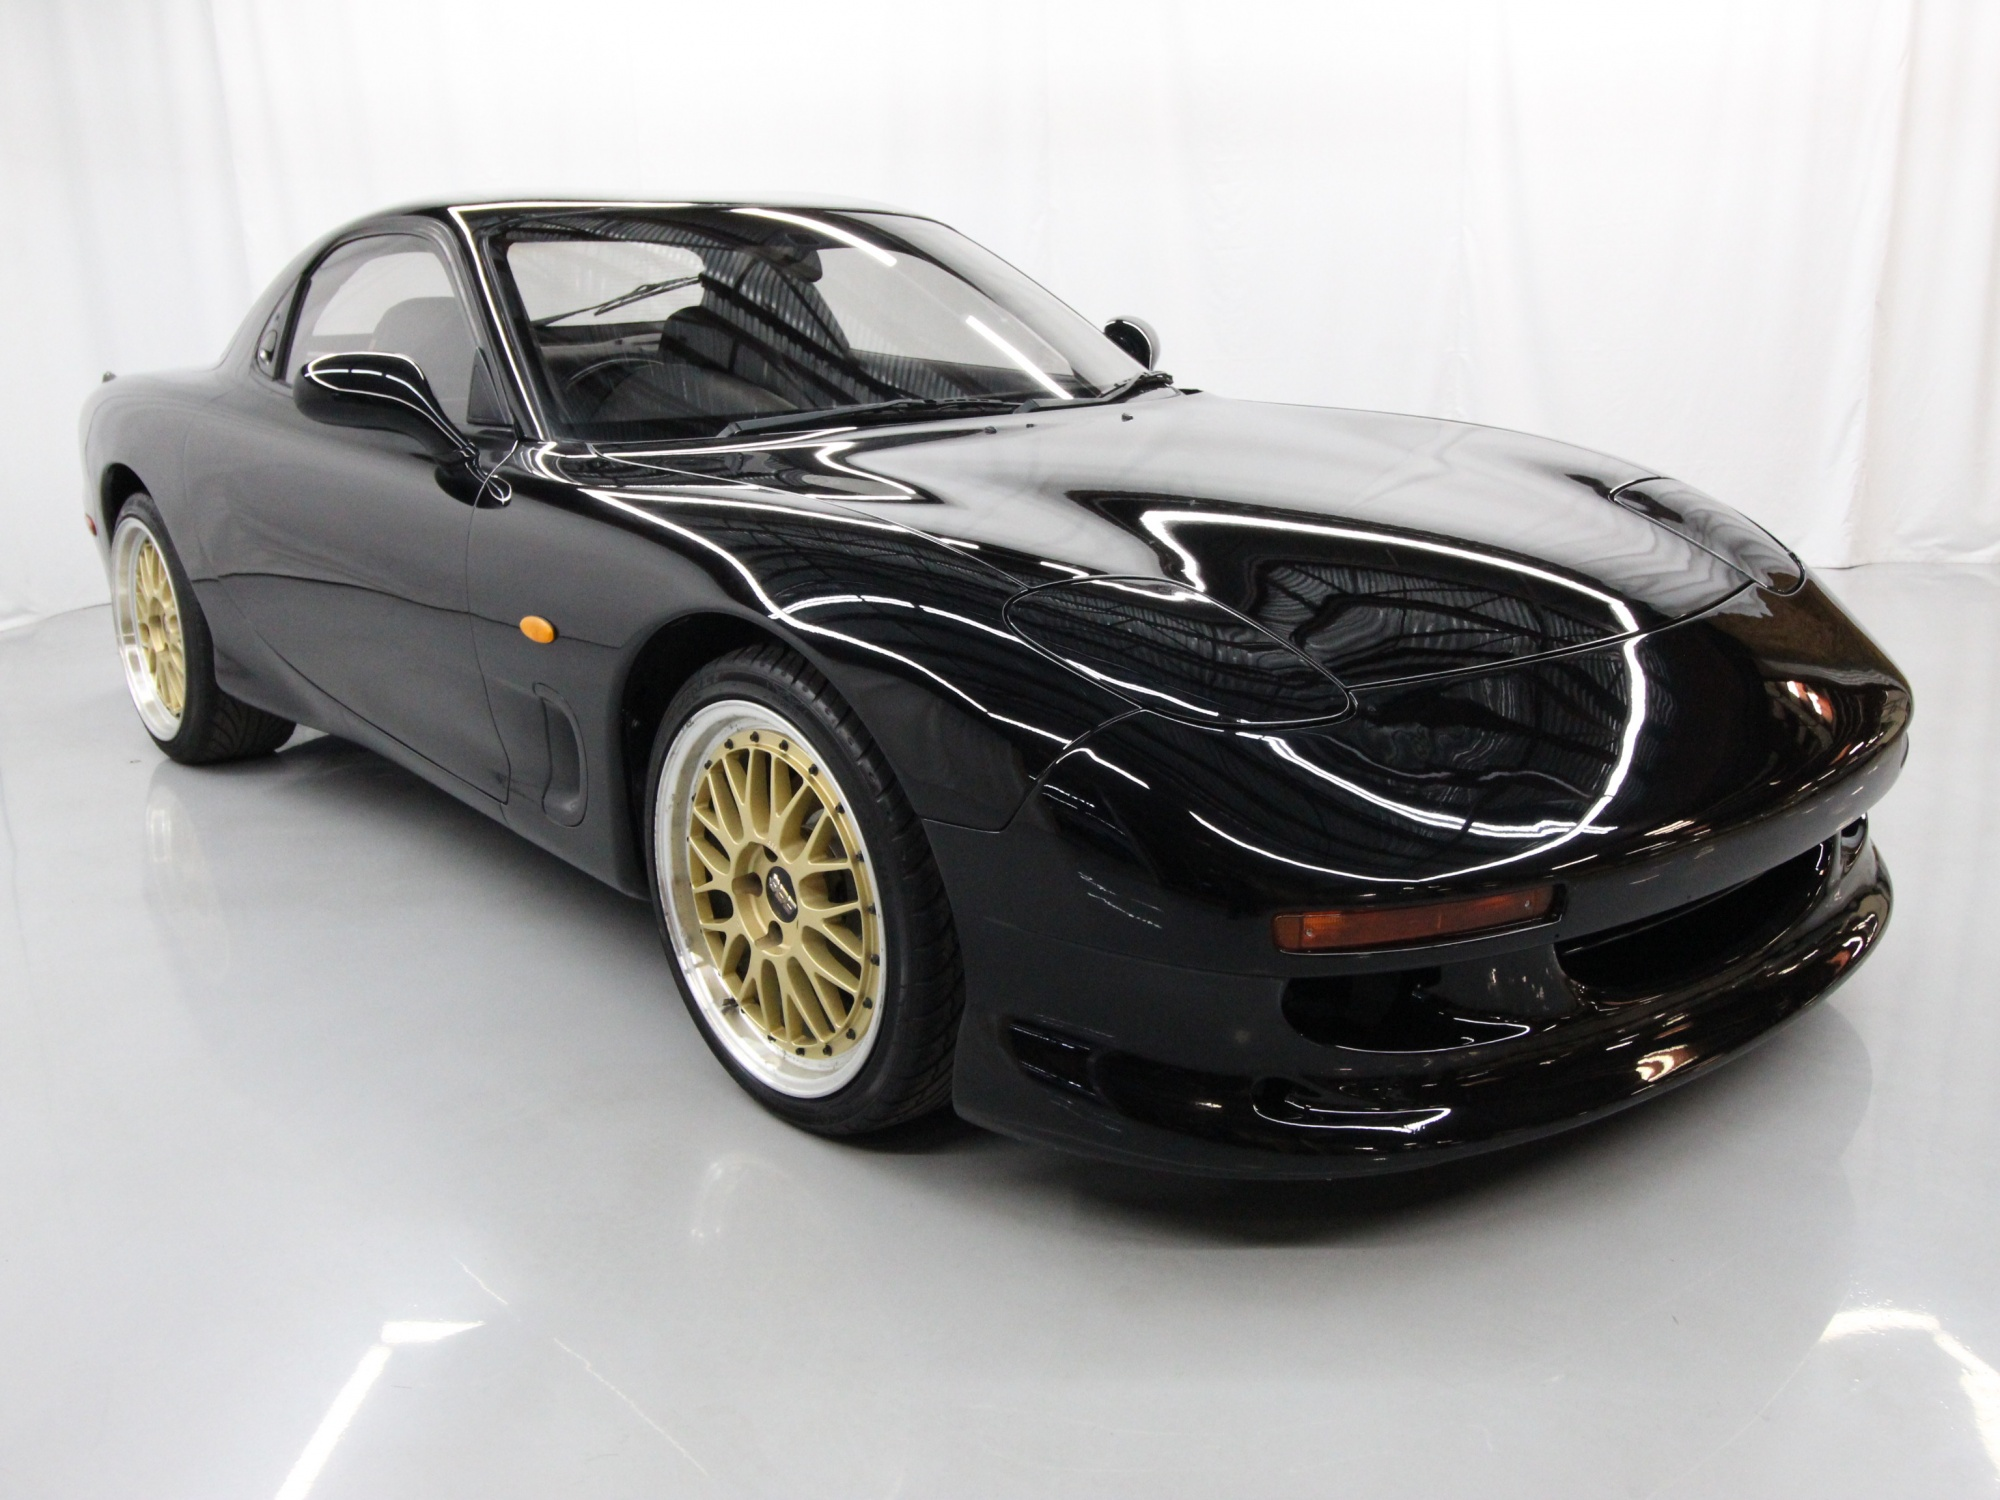 1992 Mazda RX-7 Two-Door